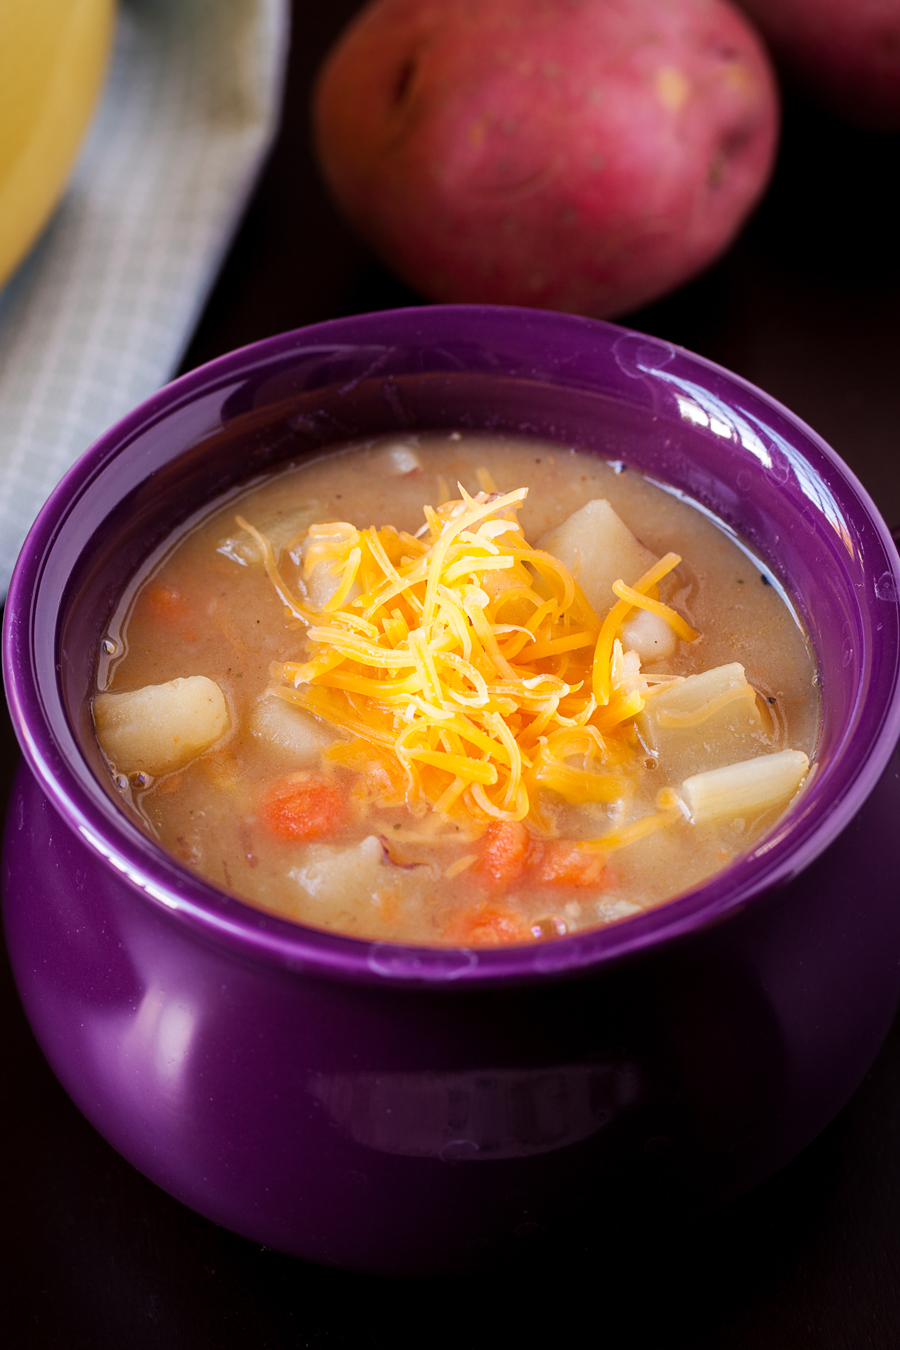 This potato soup will warm and nourish your insides!